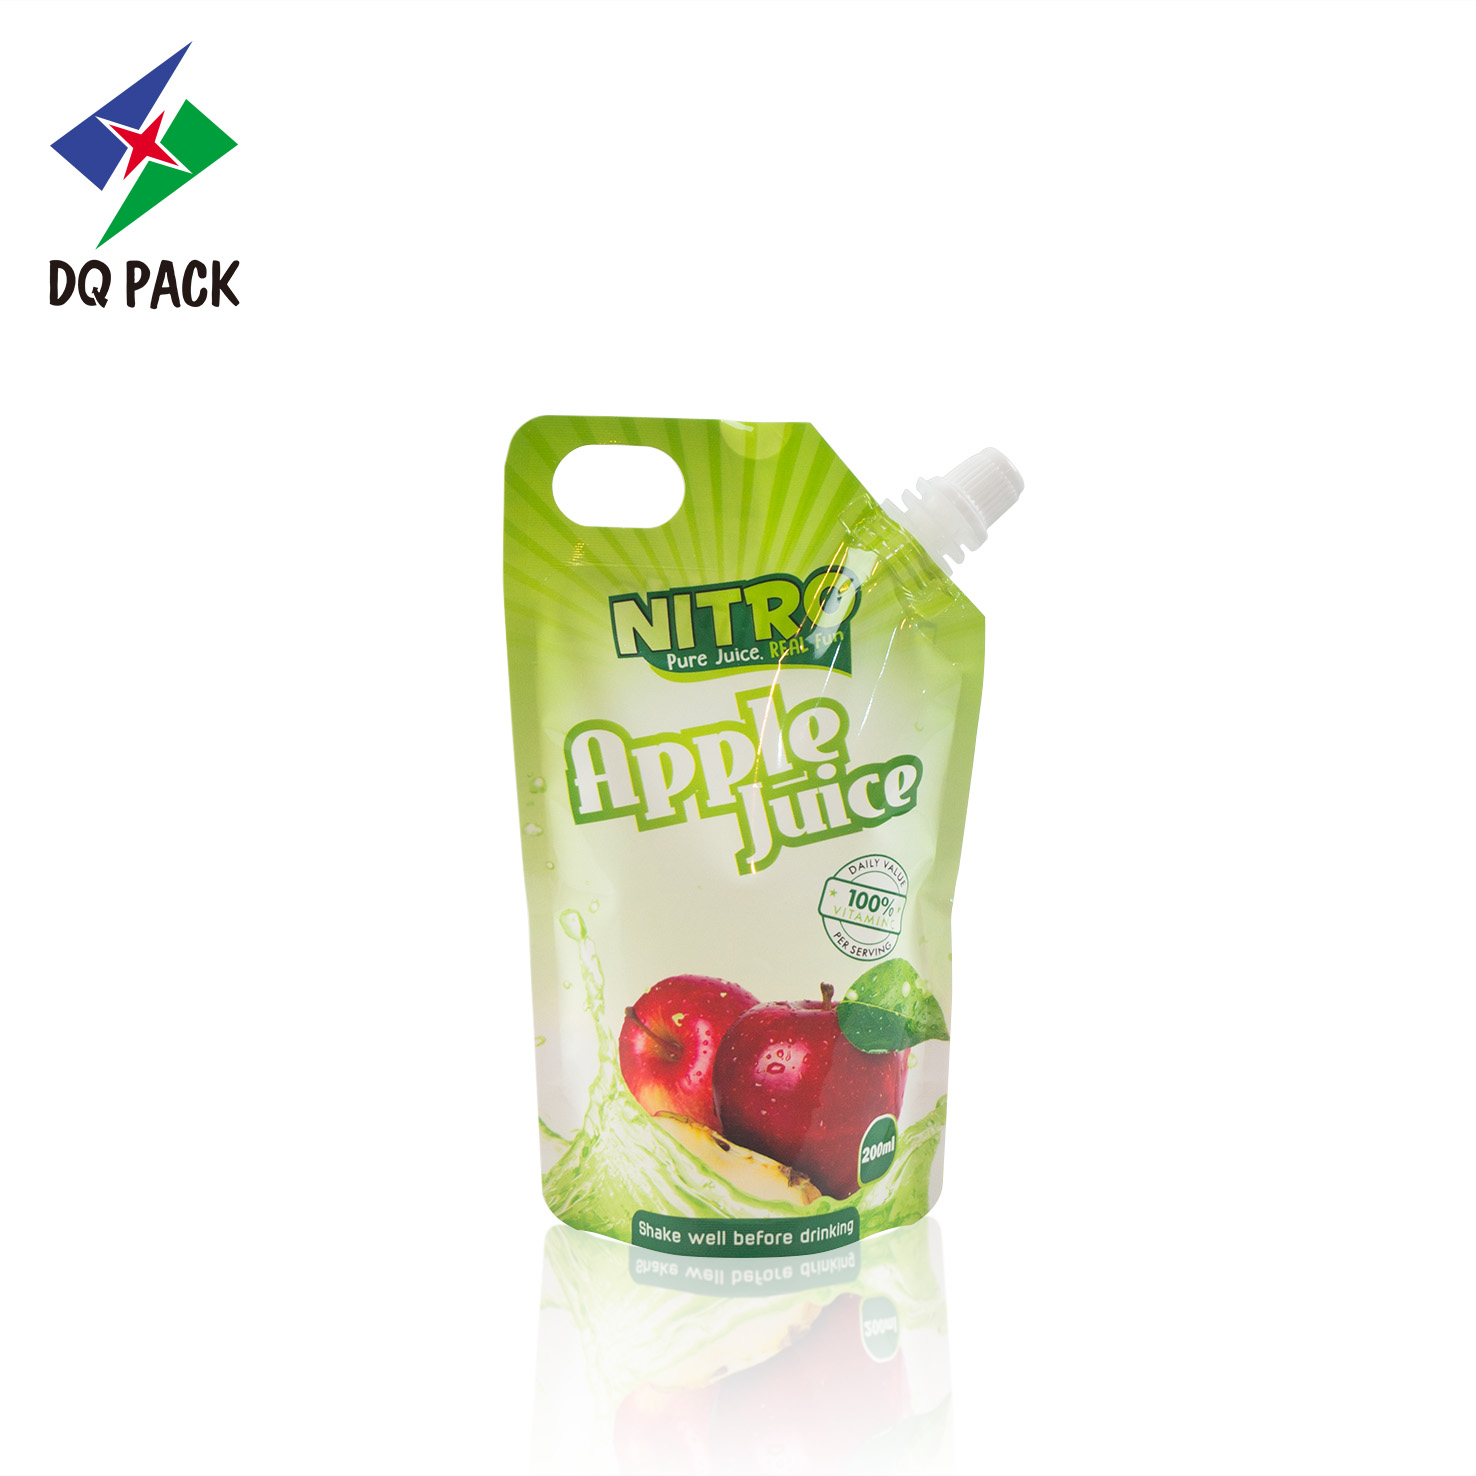 Doypack pouch spout pouch stand up pouch